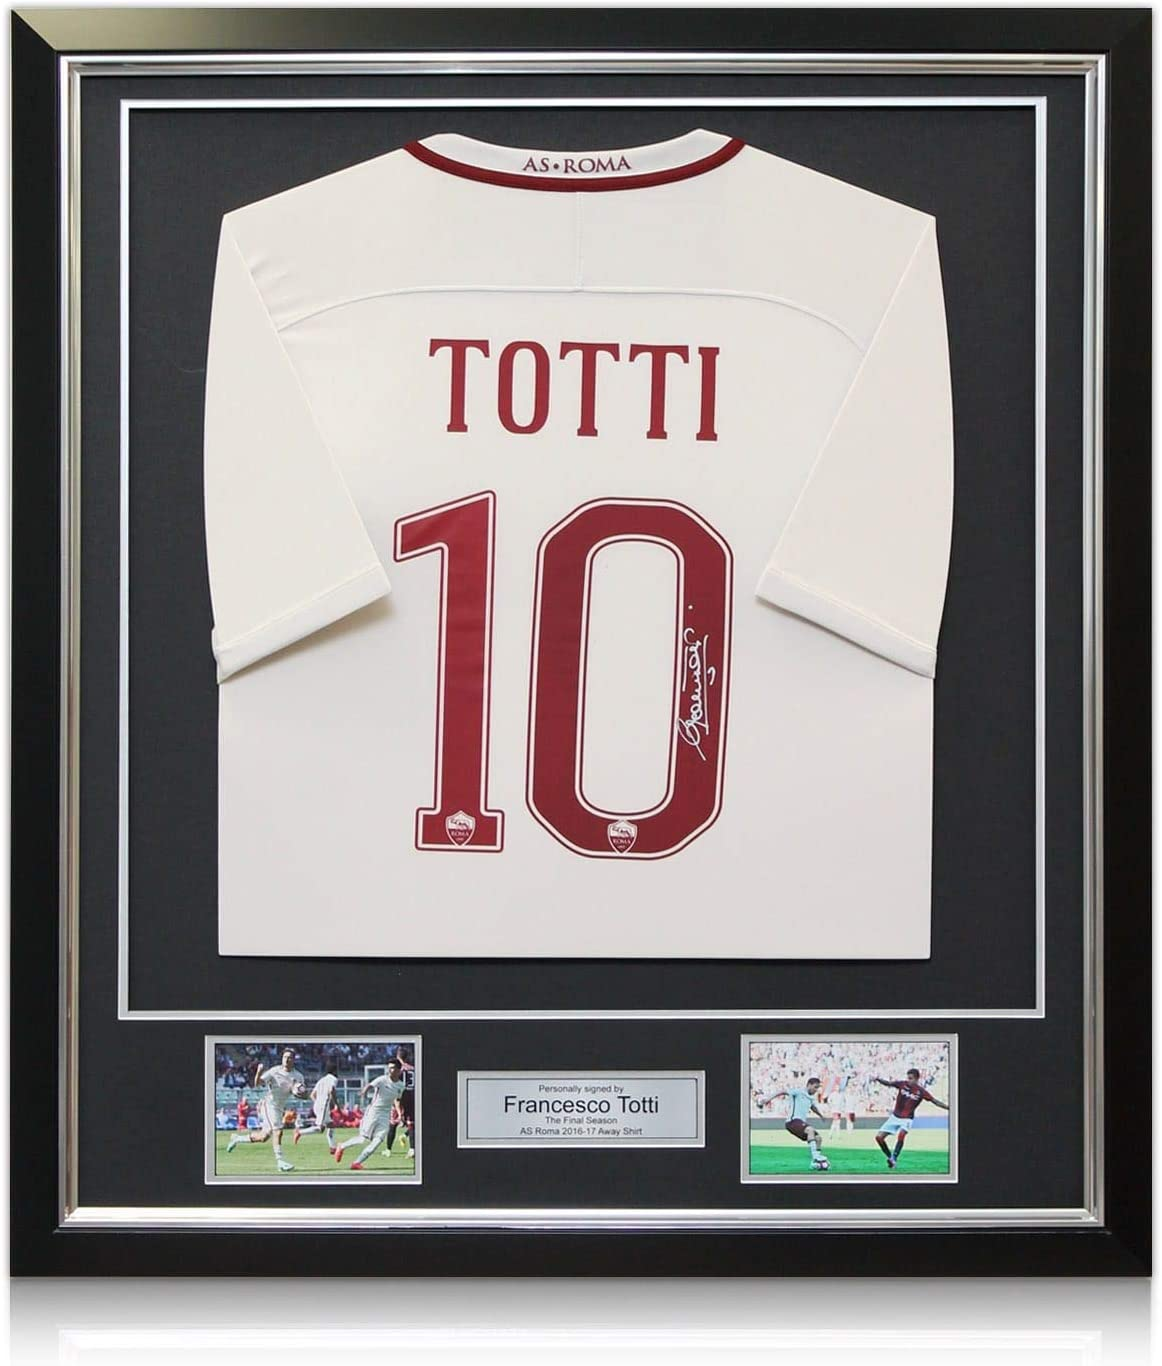 la derni/ère Saison Chemise Exclusive de Francesco Totti sign/ée AS Roma 2016-17